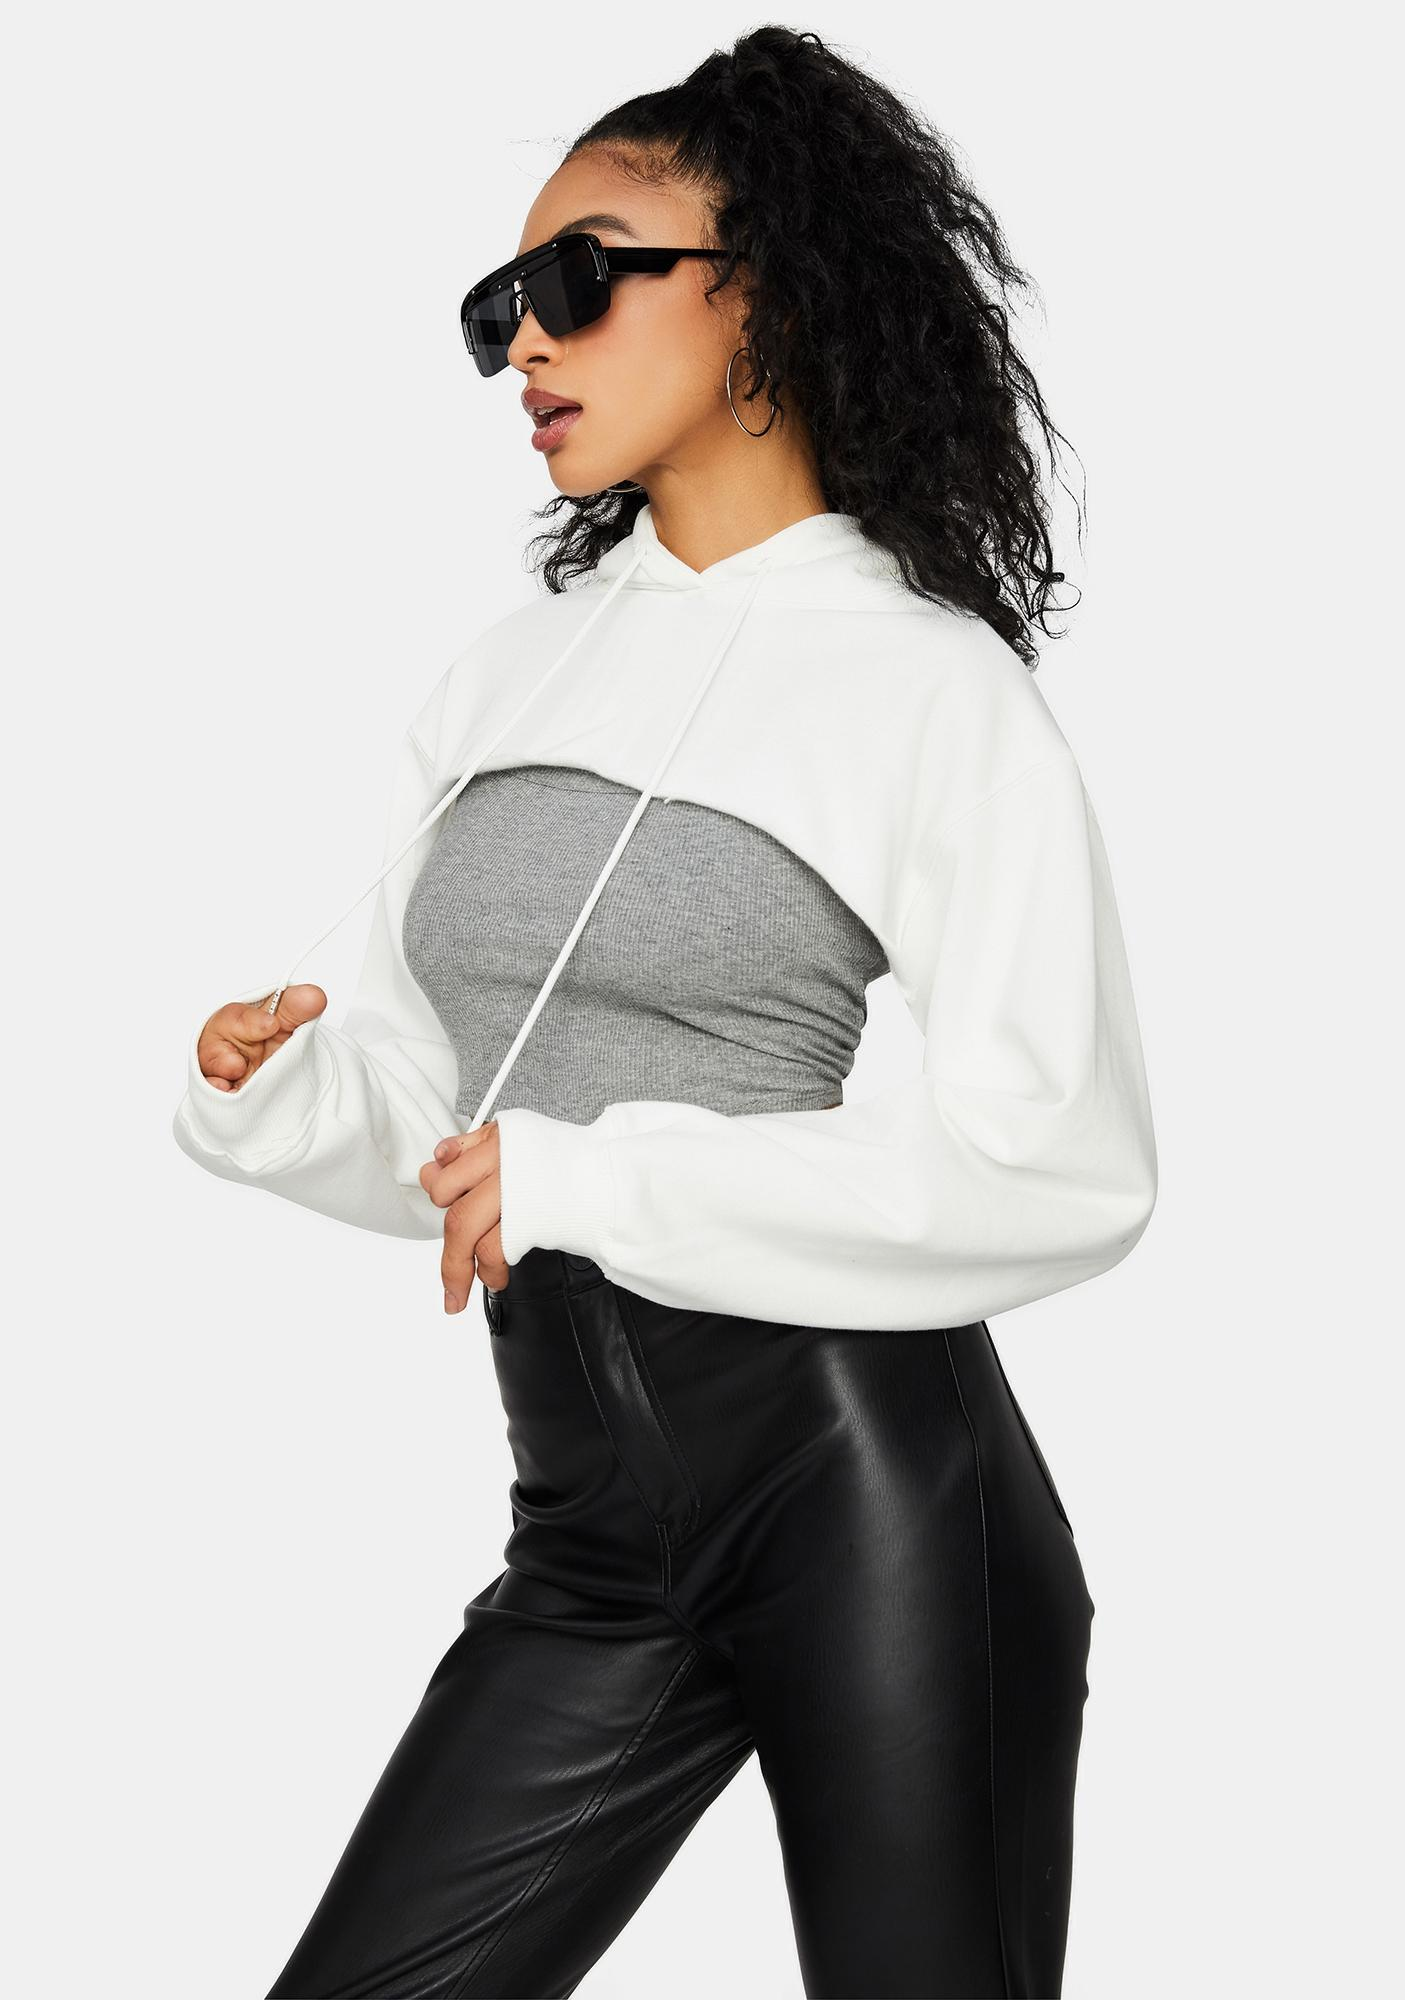 Icy Moon Whispers Crop Top